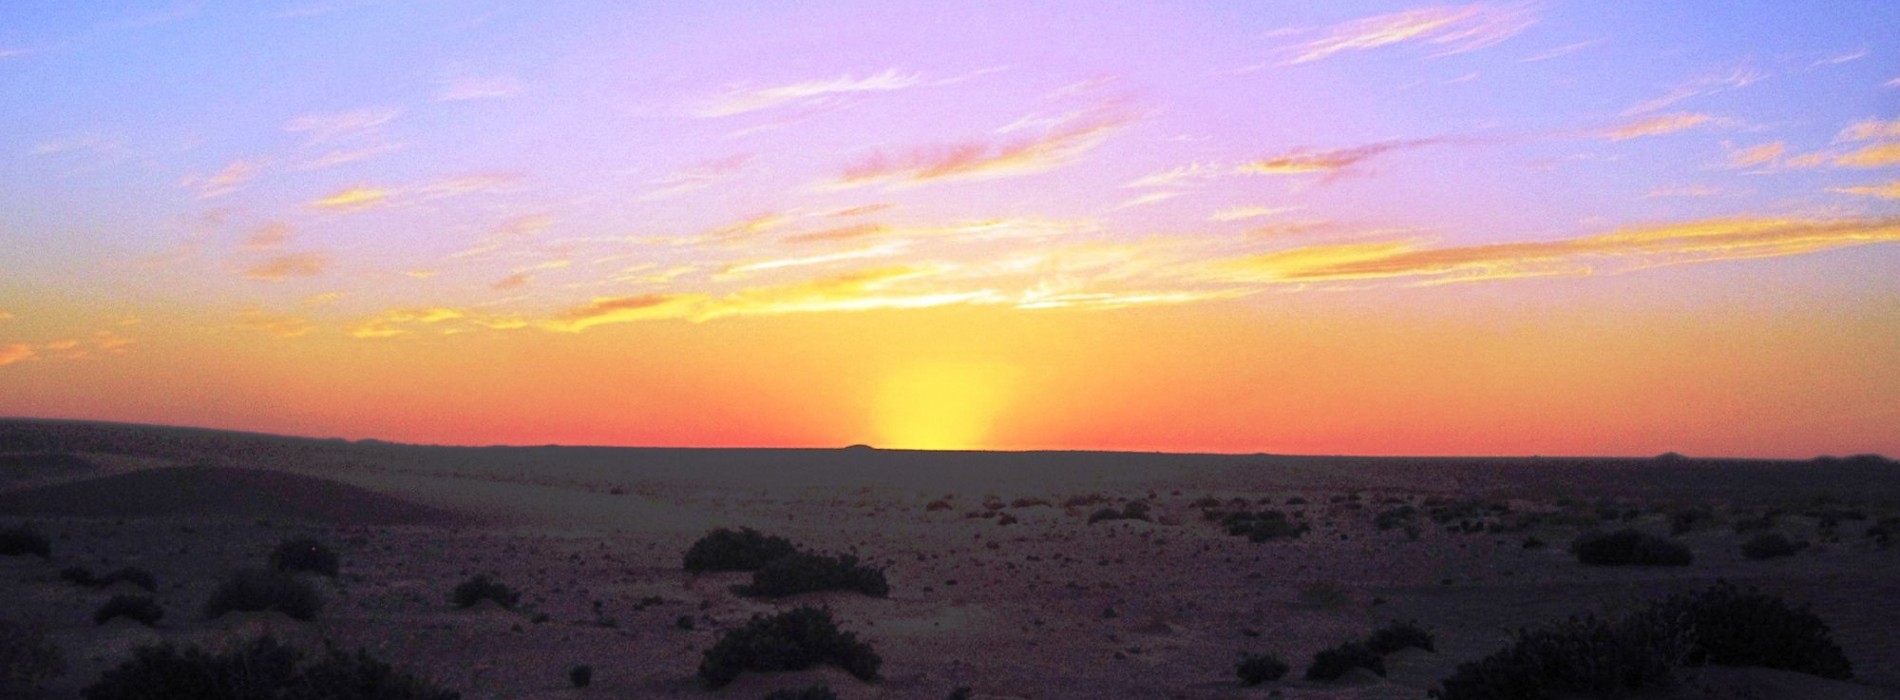 Sunrise in the Sahara Desert